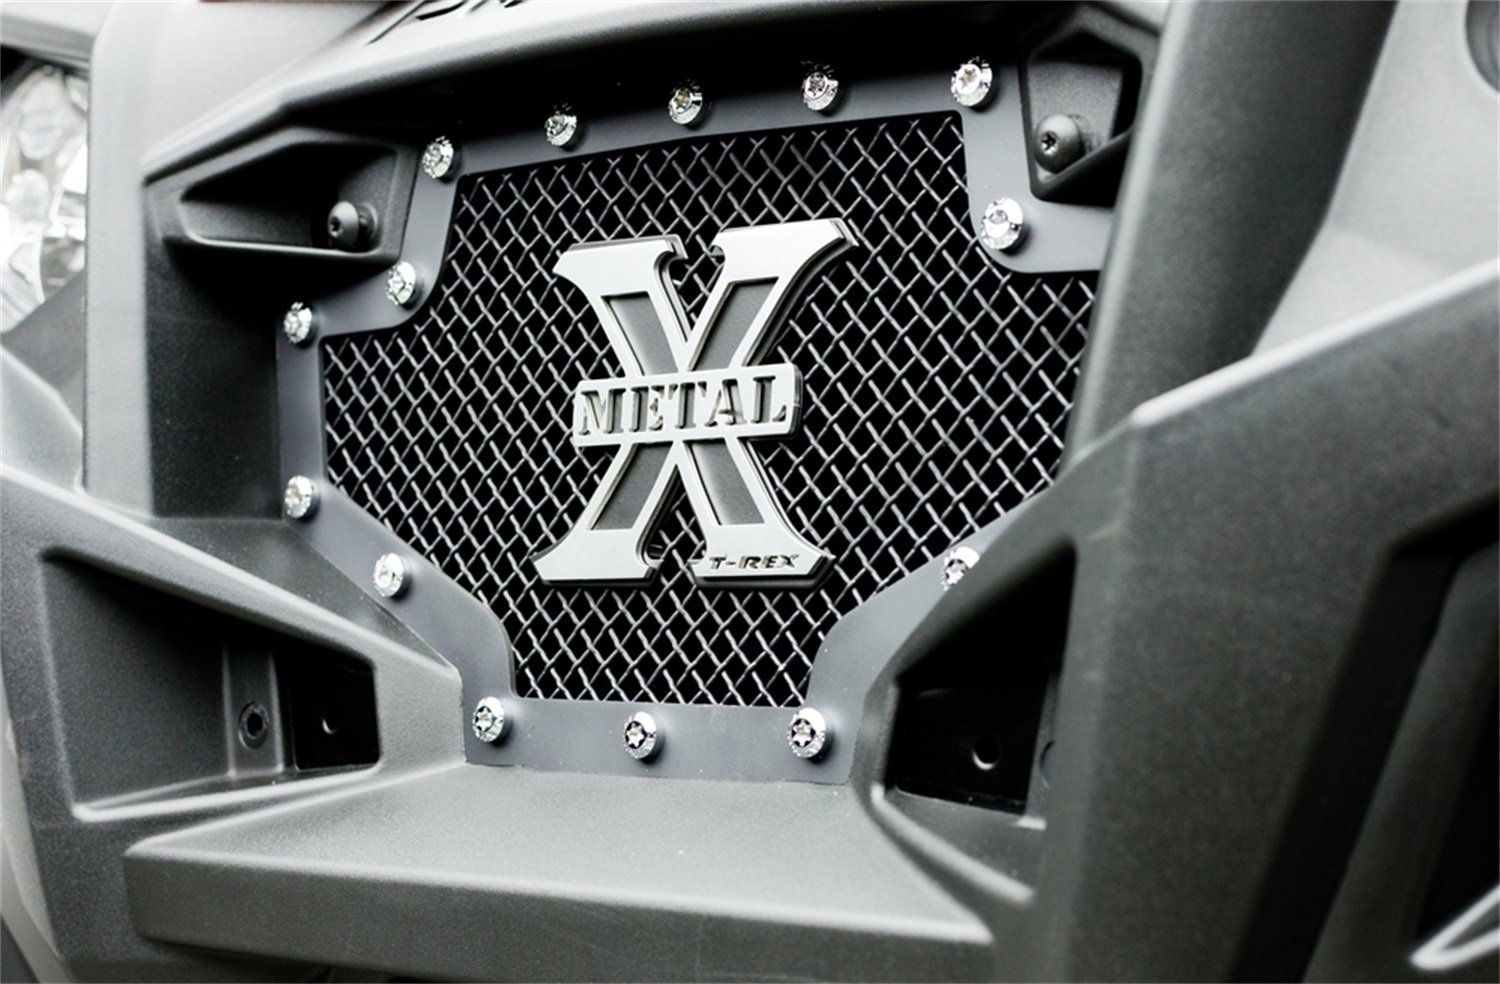 T-Rex 6719001 X-Metal Steel//Black Finish Small Formed Mesh Replacement Grille for Polaris RZR XP 900 T-Rex Grilles